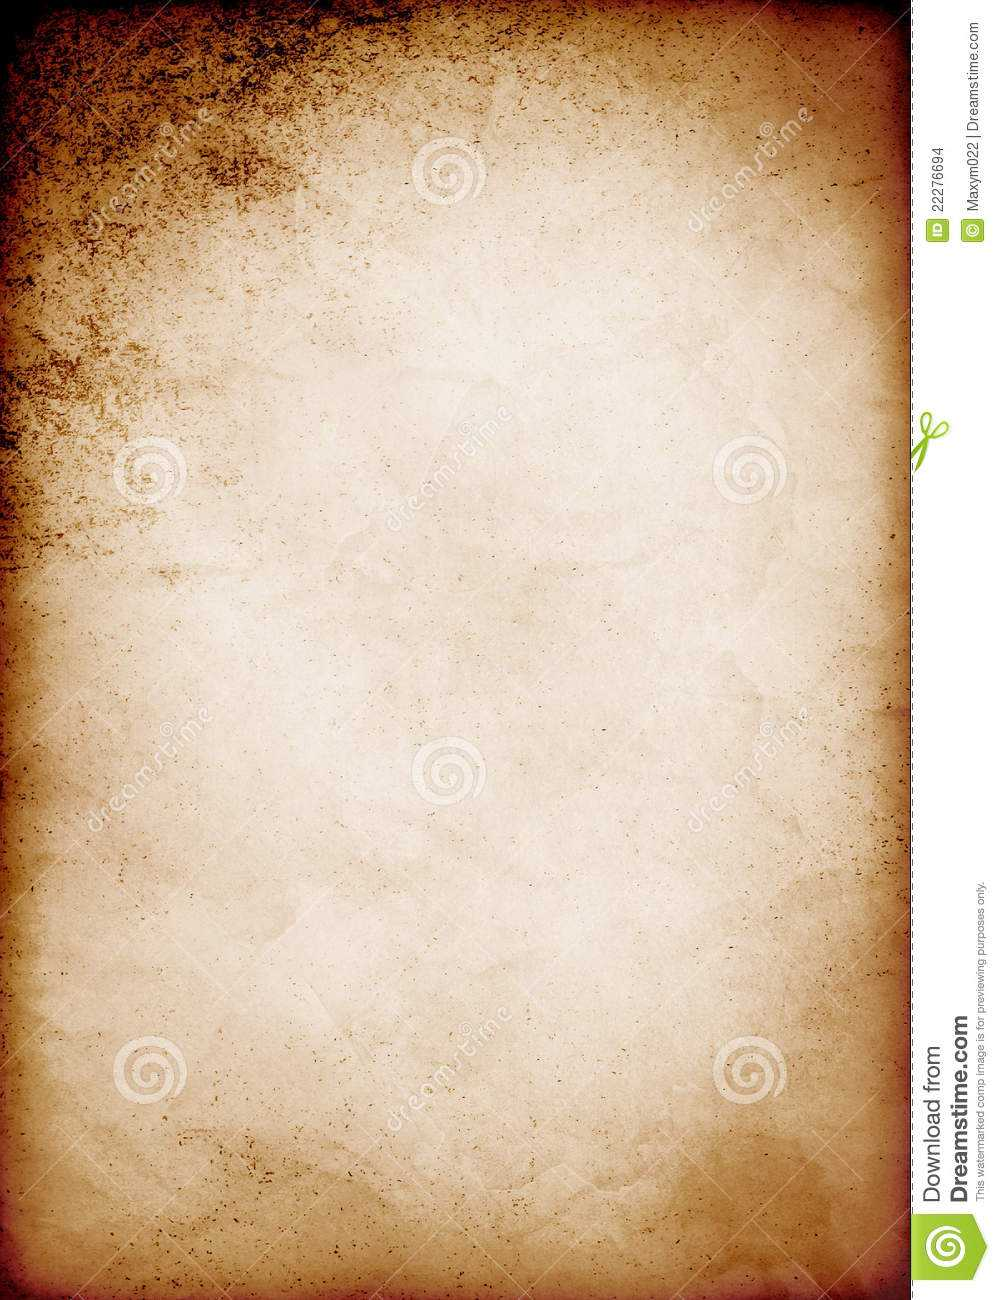 20 Old Paper Template For Word Images – Old Scroll Paper Inside Old Blank Newspaper Template